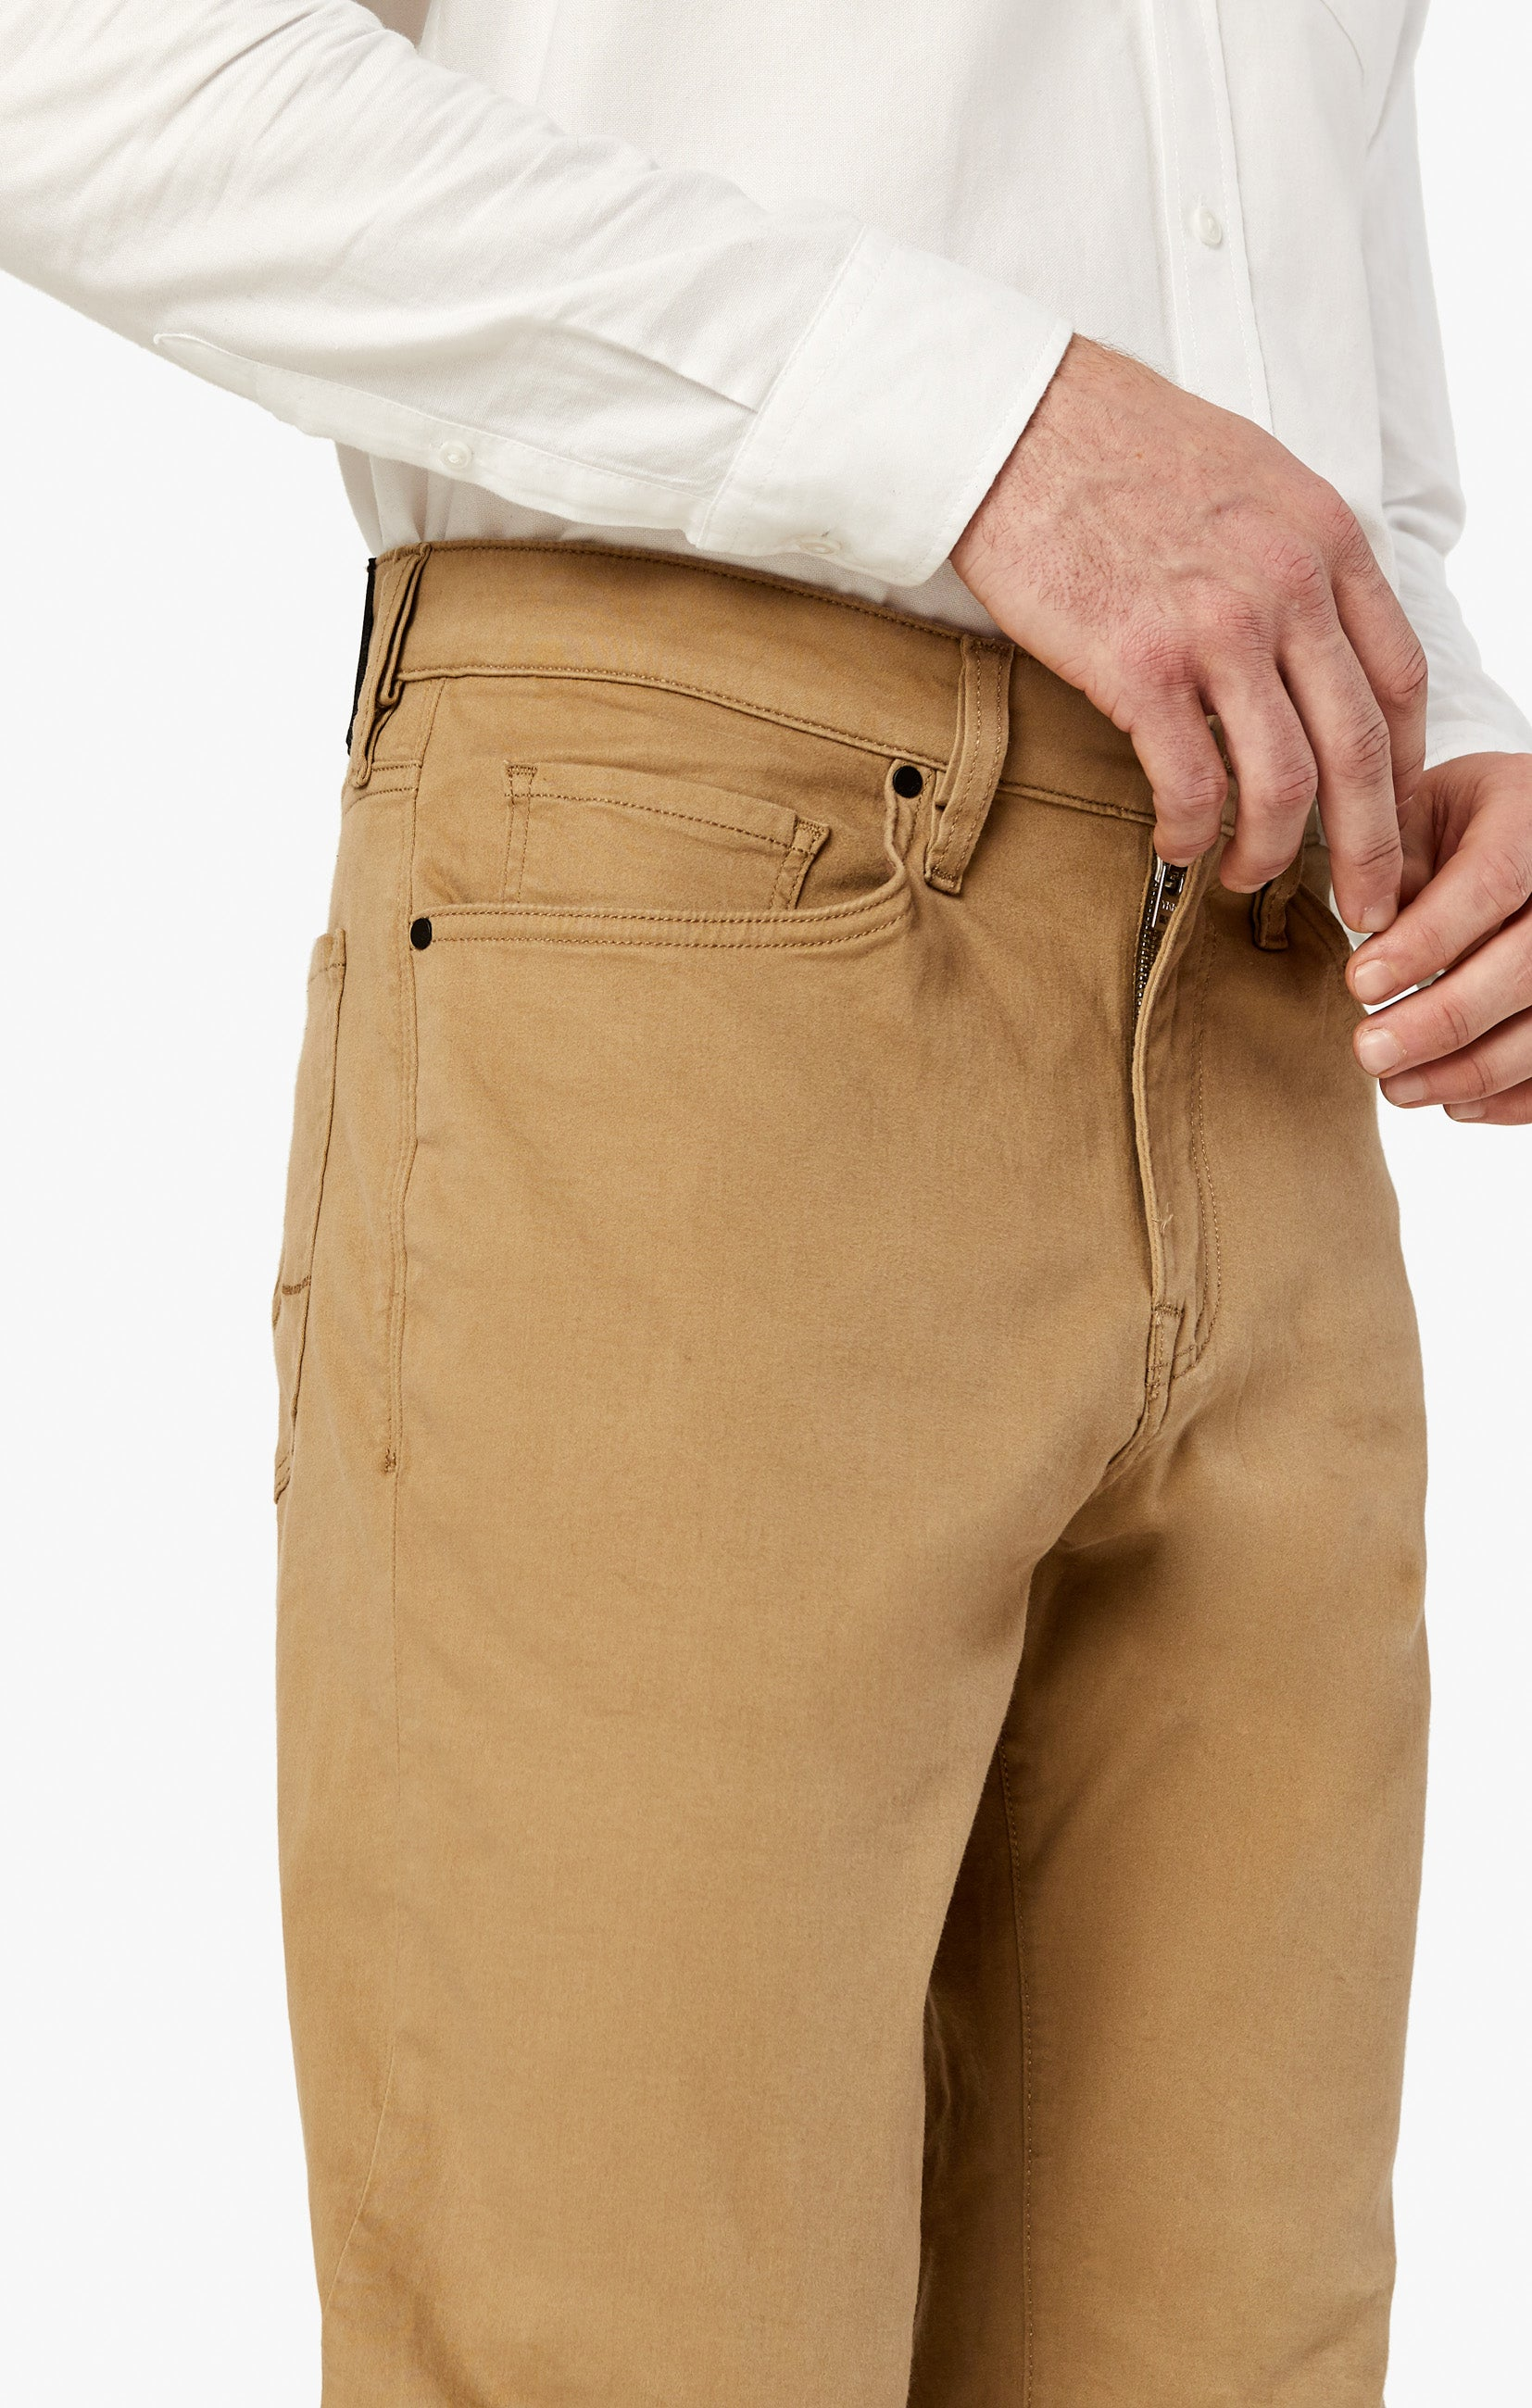 Charisma Relaxed Straight Pants In Khaki Twill Image 8